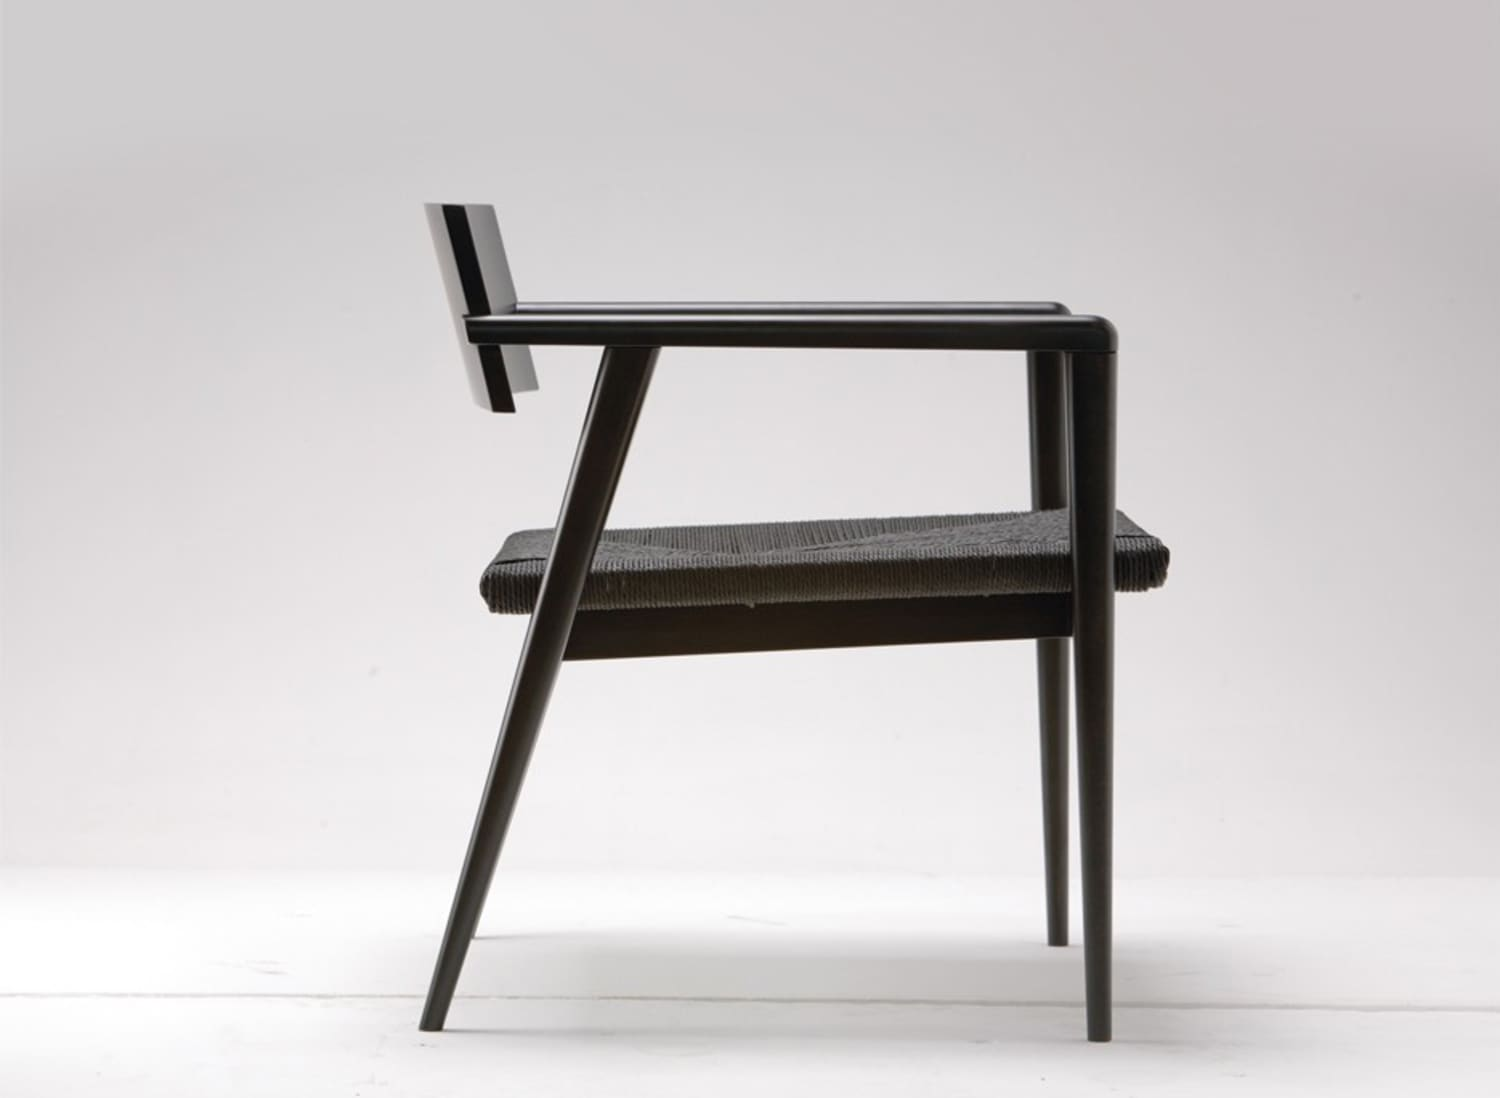 The Italian Mid-Century Modern Designer I'm Only Just Learning About